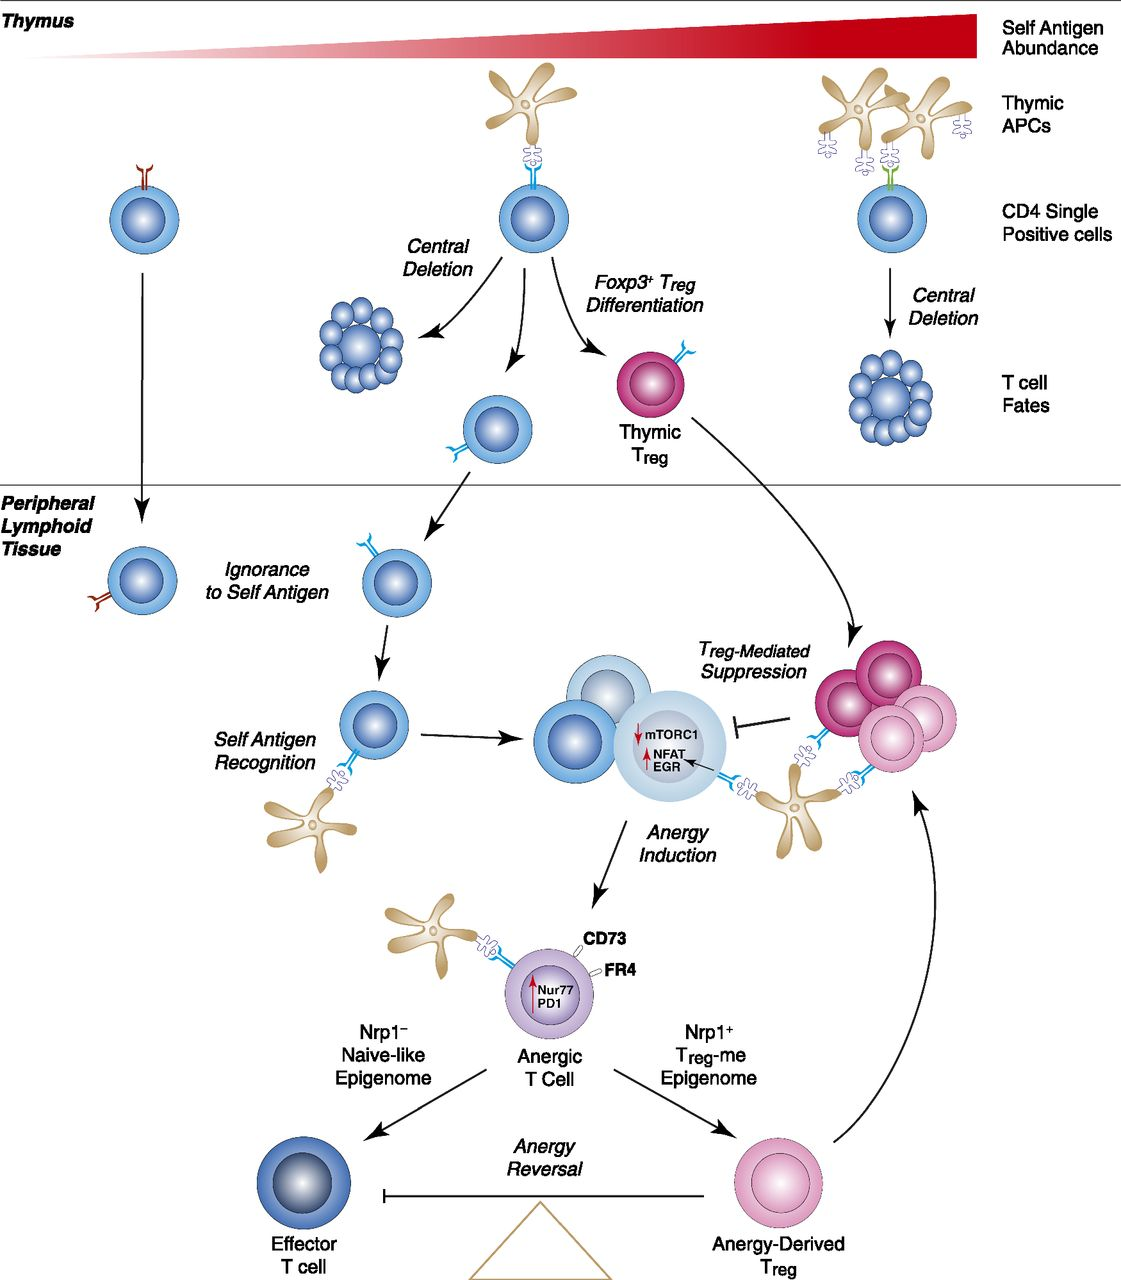 t cells and cd4